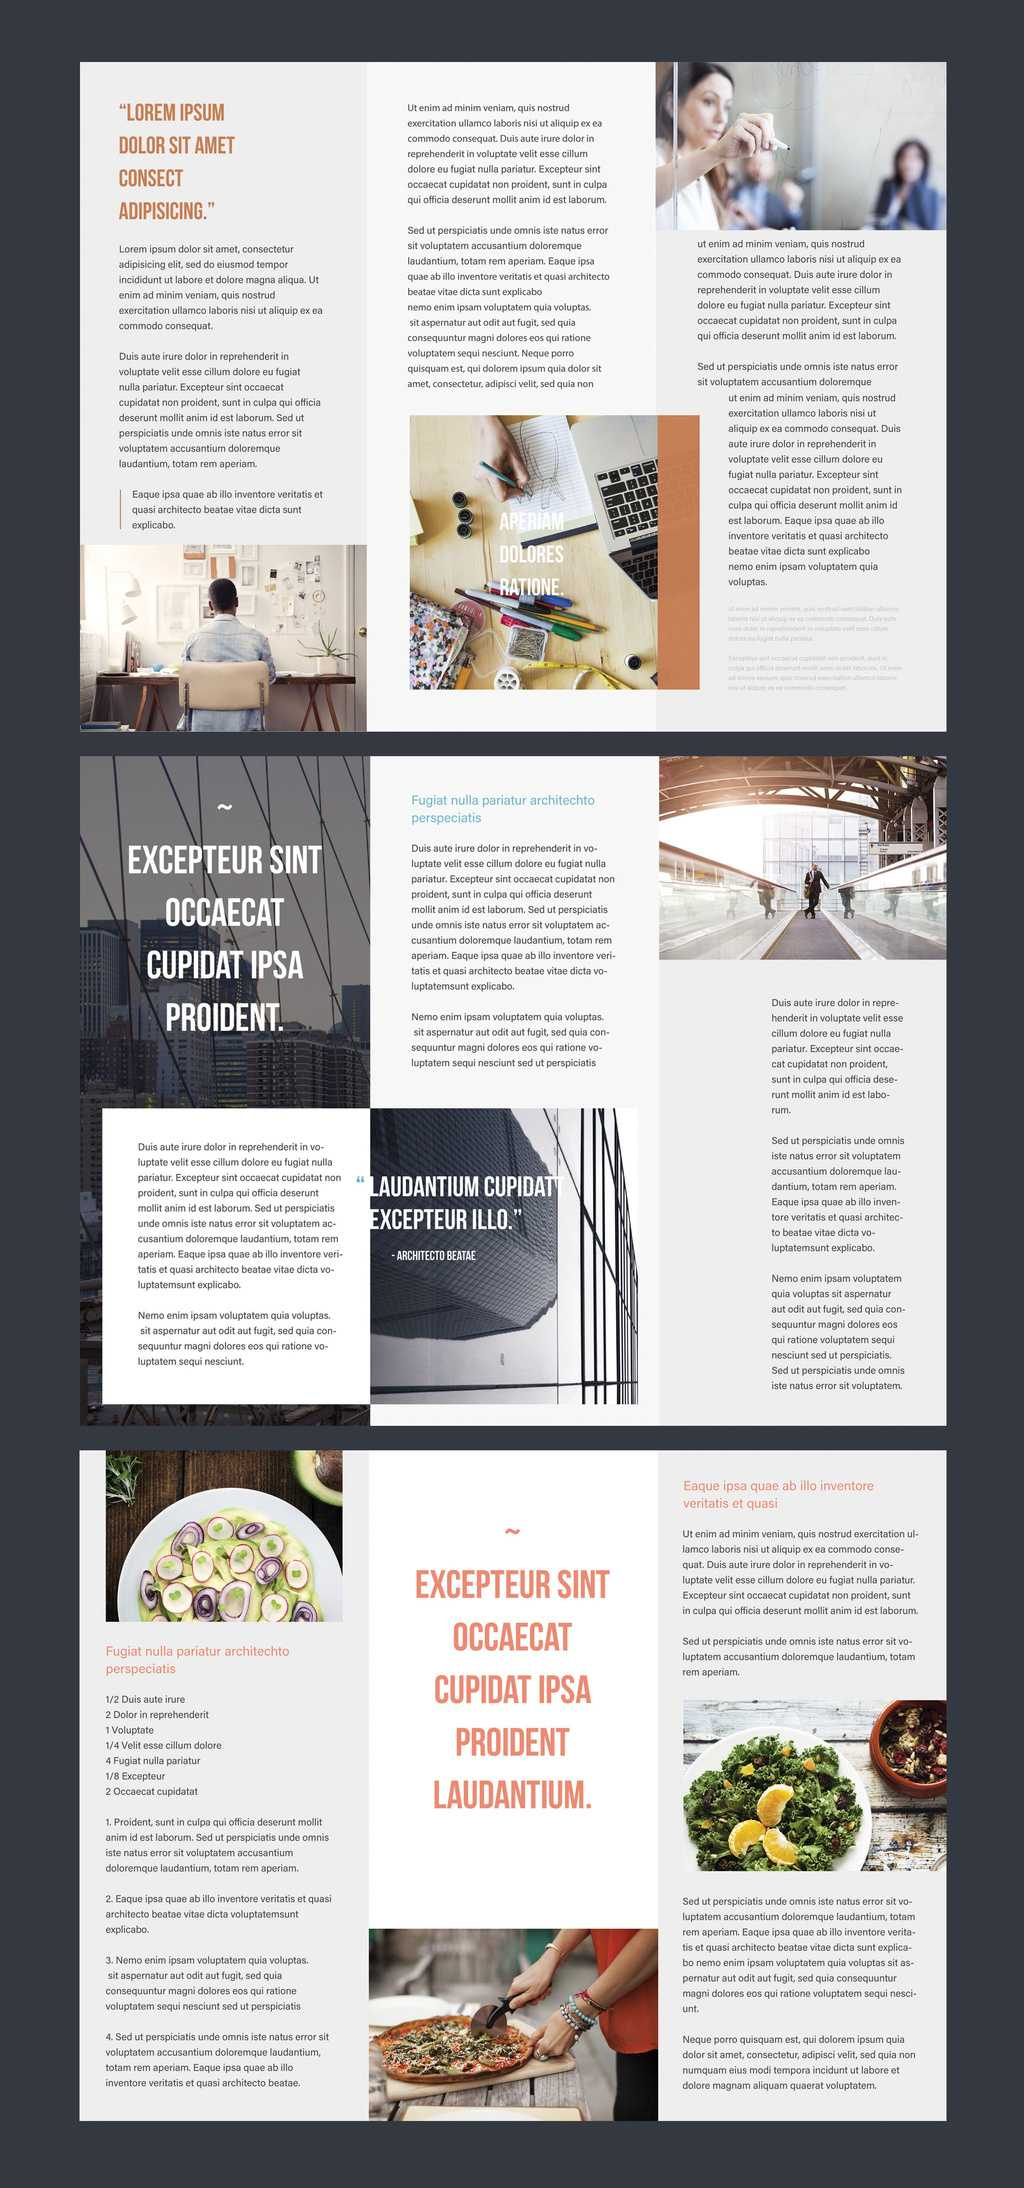 Professional Brochure Templates | Adobe Blog With Regard To Brochure Templates Adobe Illustrator